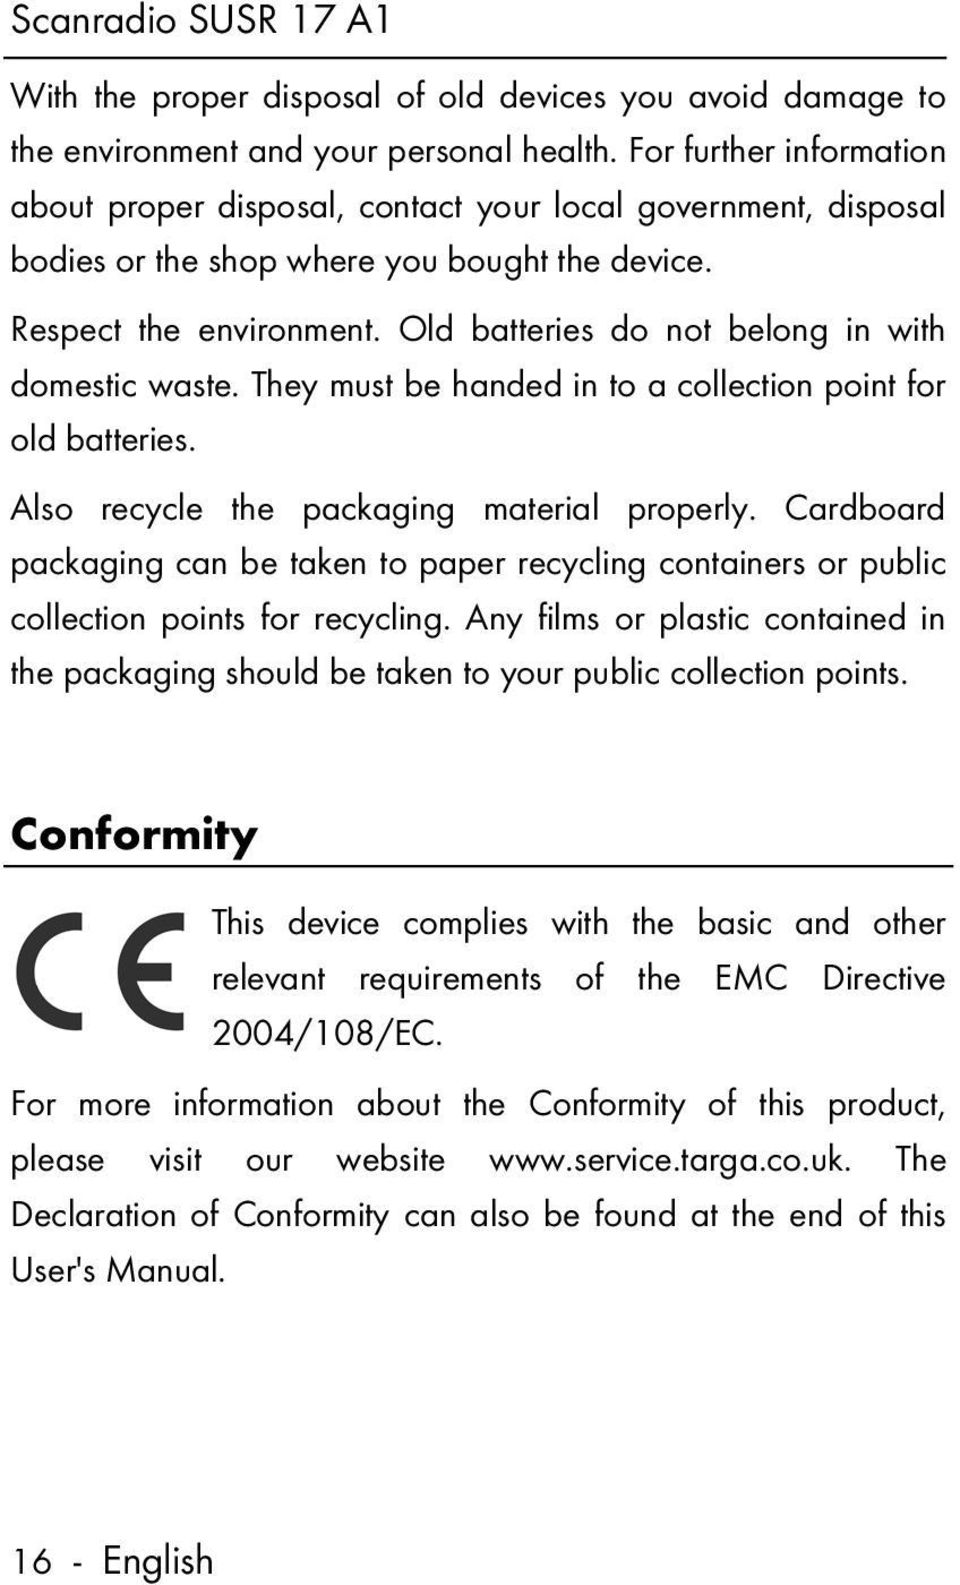 Old batteries do not belong in with domestic waste. They must be handed in to a collection point for old batteries. Also recycle the packaging material properly.